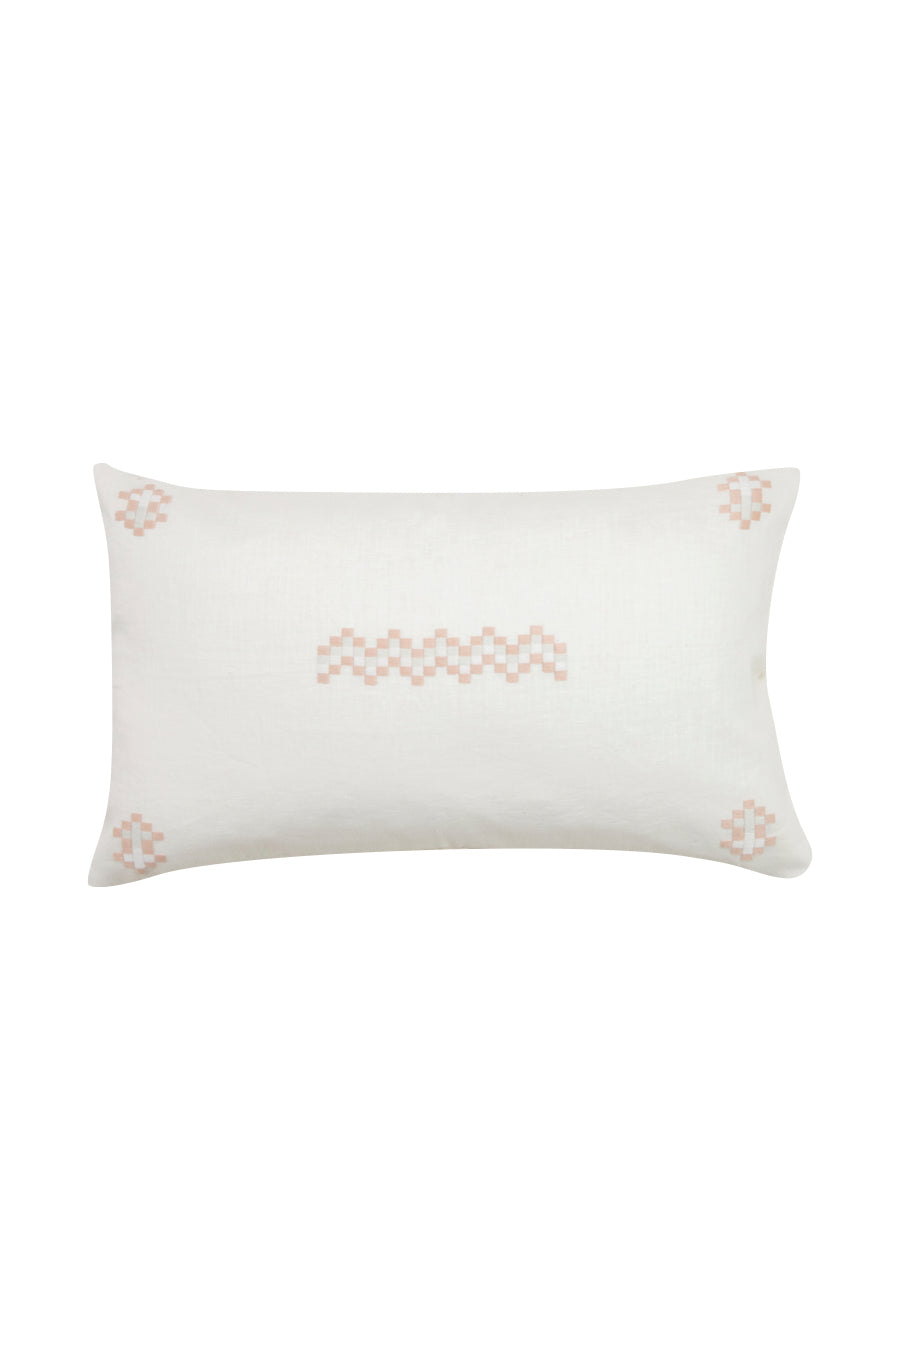 Aid to Artisan Cruz Pillow - Pearl